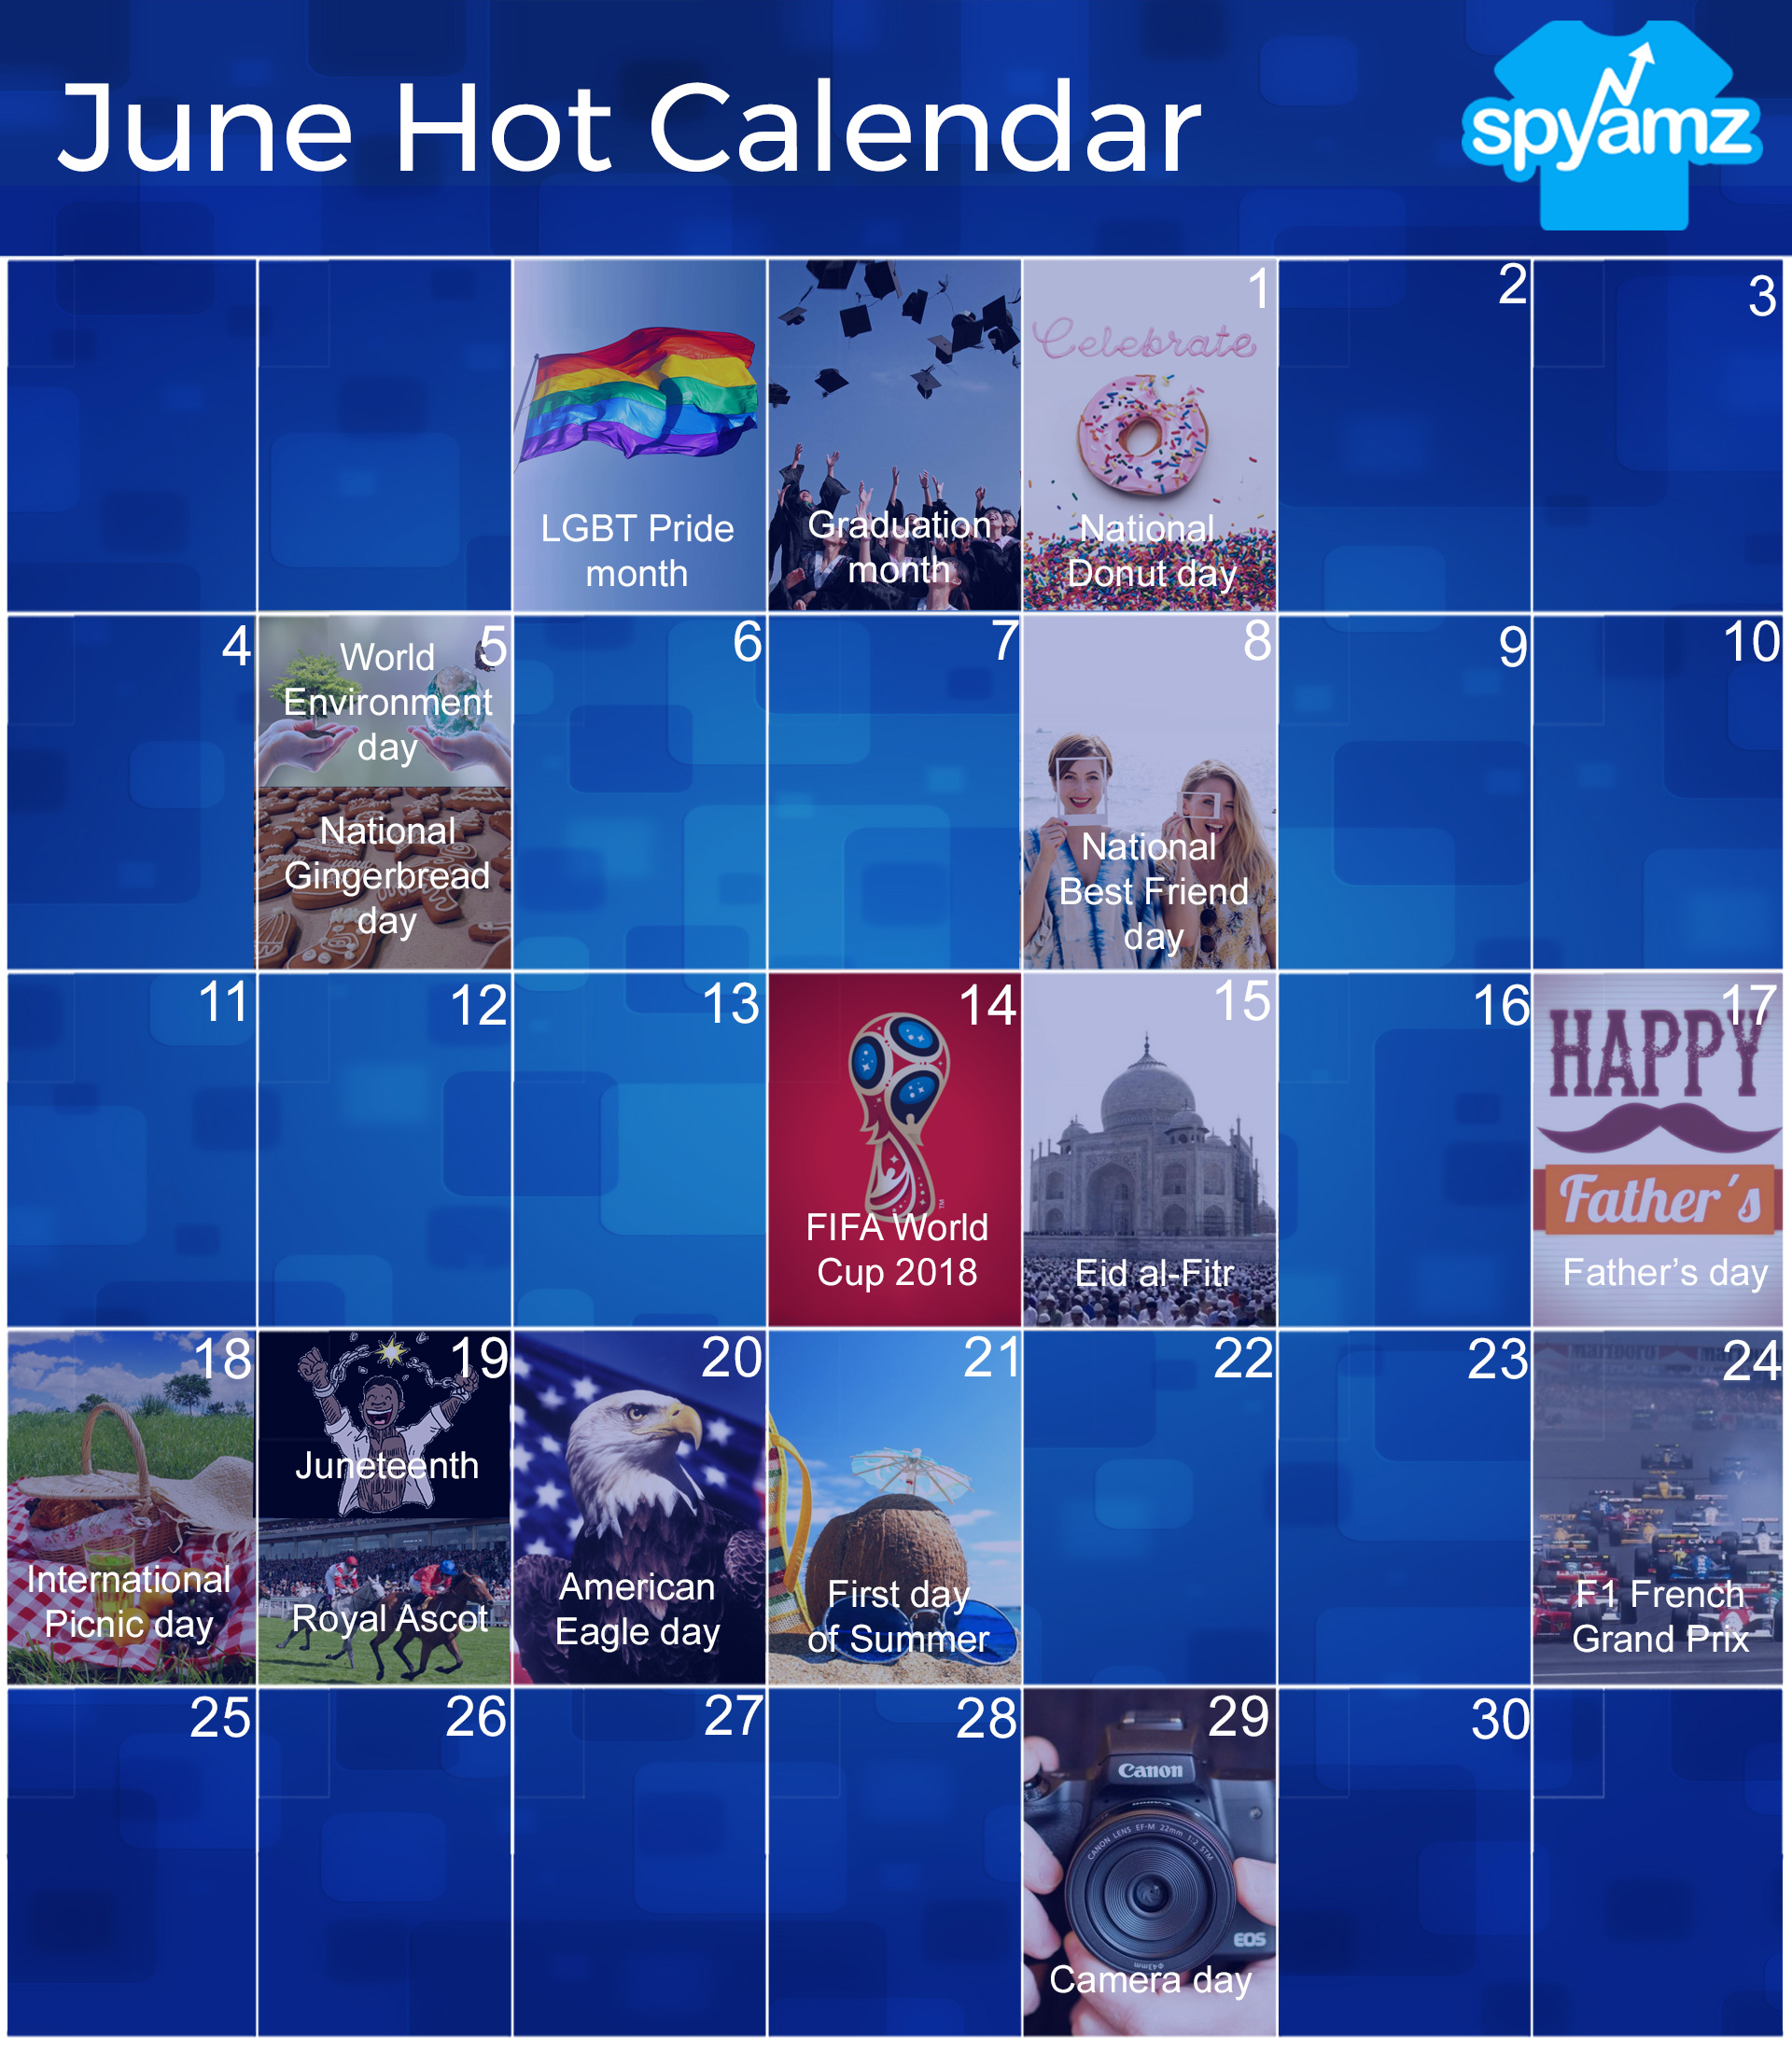 Event Calendar Design Inspiration : Hottest events in june with design inspiration merch by